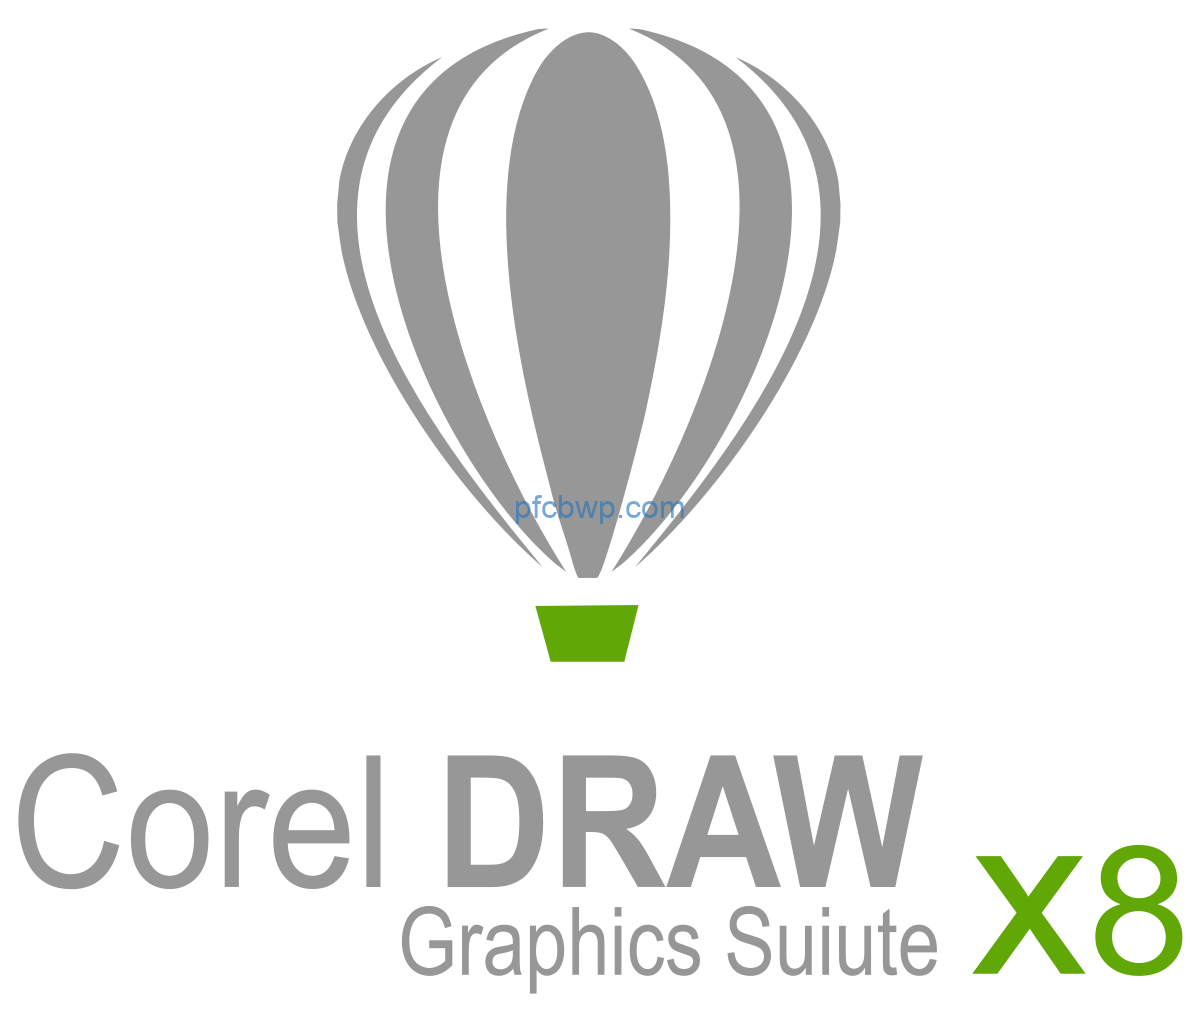 corel draw x8 torrent with keygen